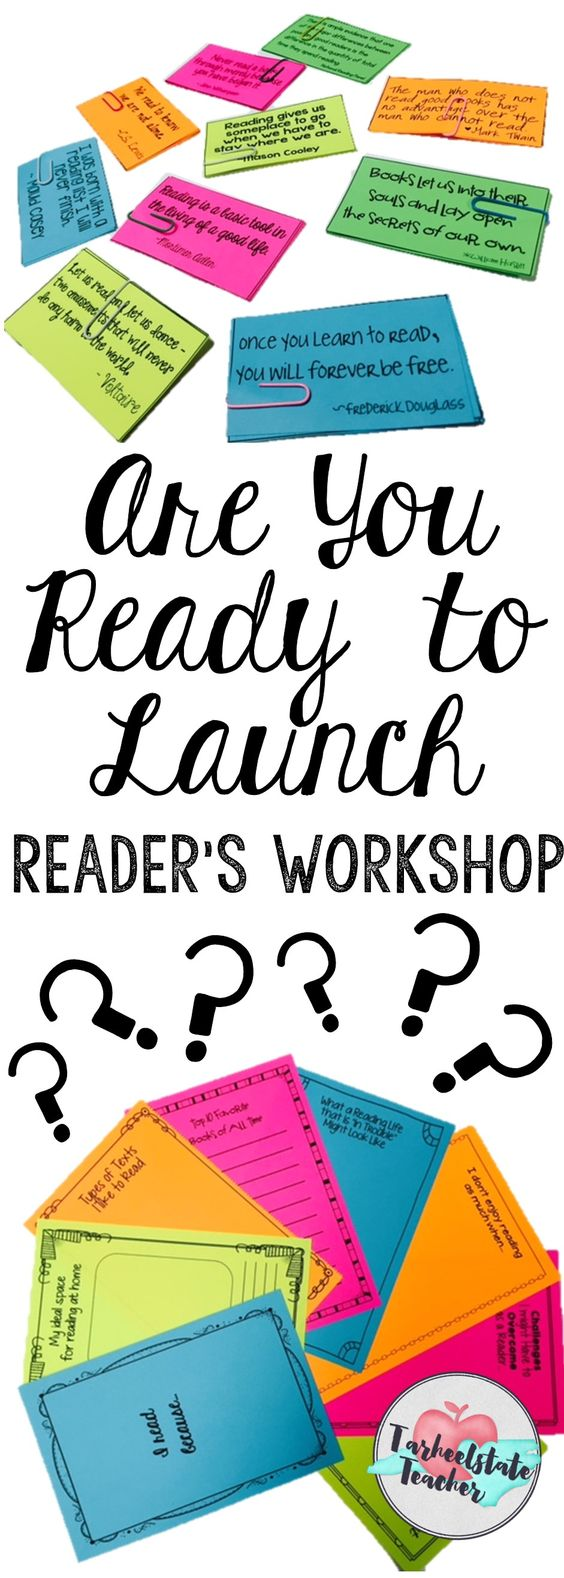 Get ready to Build a Reading Life in your reader's workshop this year. Anchor chart parts, reading response journal/notebook prompts, quotations about reading-everything you need to create a love of reading and LAUNCH upper elementary workshop this year!